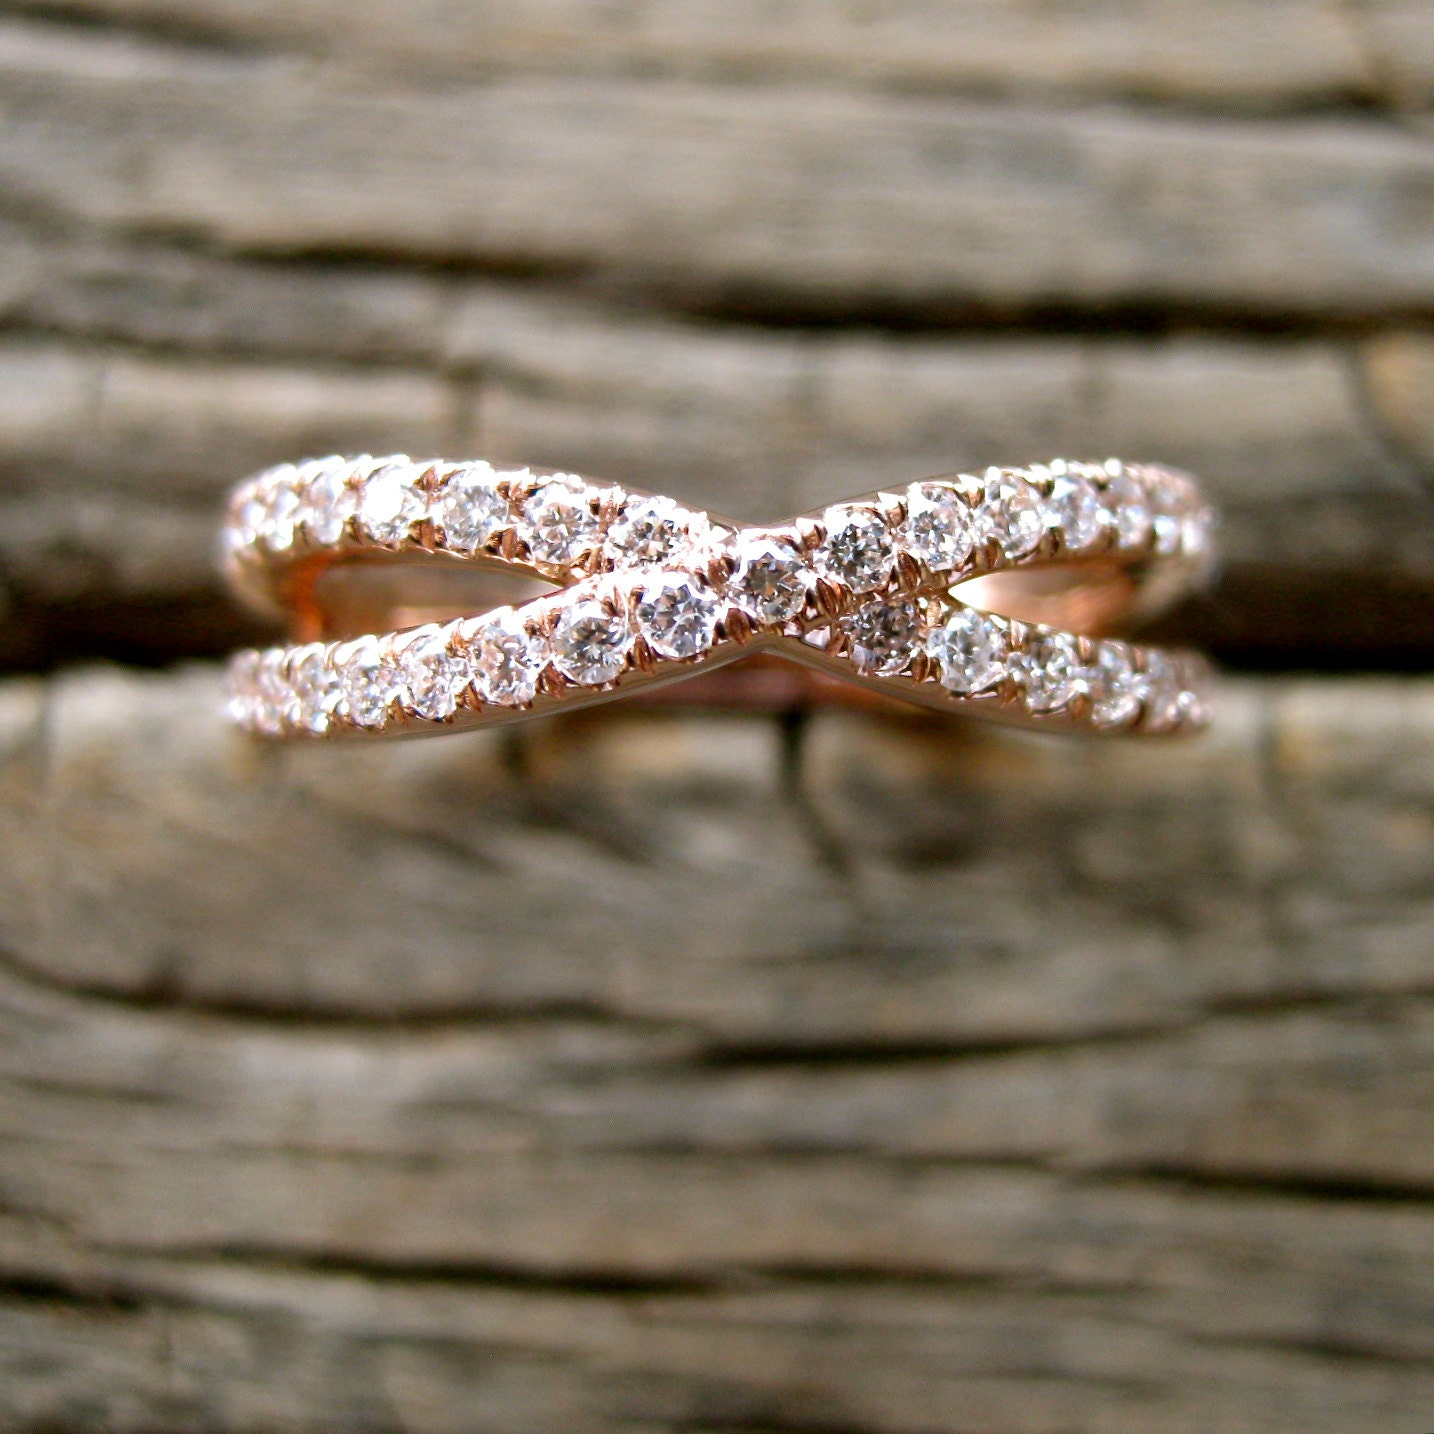 of with tungsten best mens engagement sets white matching unique womens band diamond eternity gold infinity yellow com him for his classy and awesome ladies unusual size simple carat piece bands platinum wedding set male full pave her ring affordable women sapphire